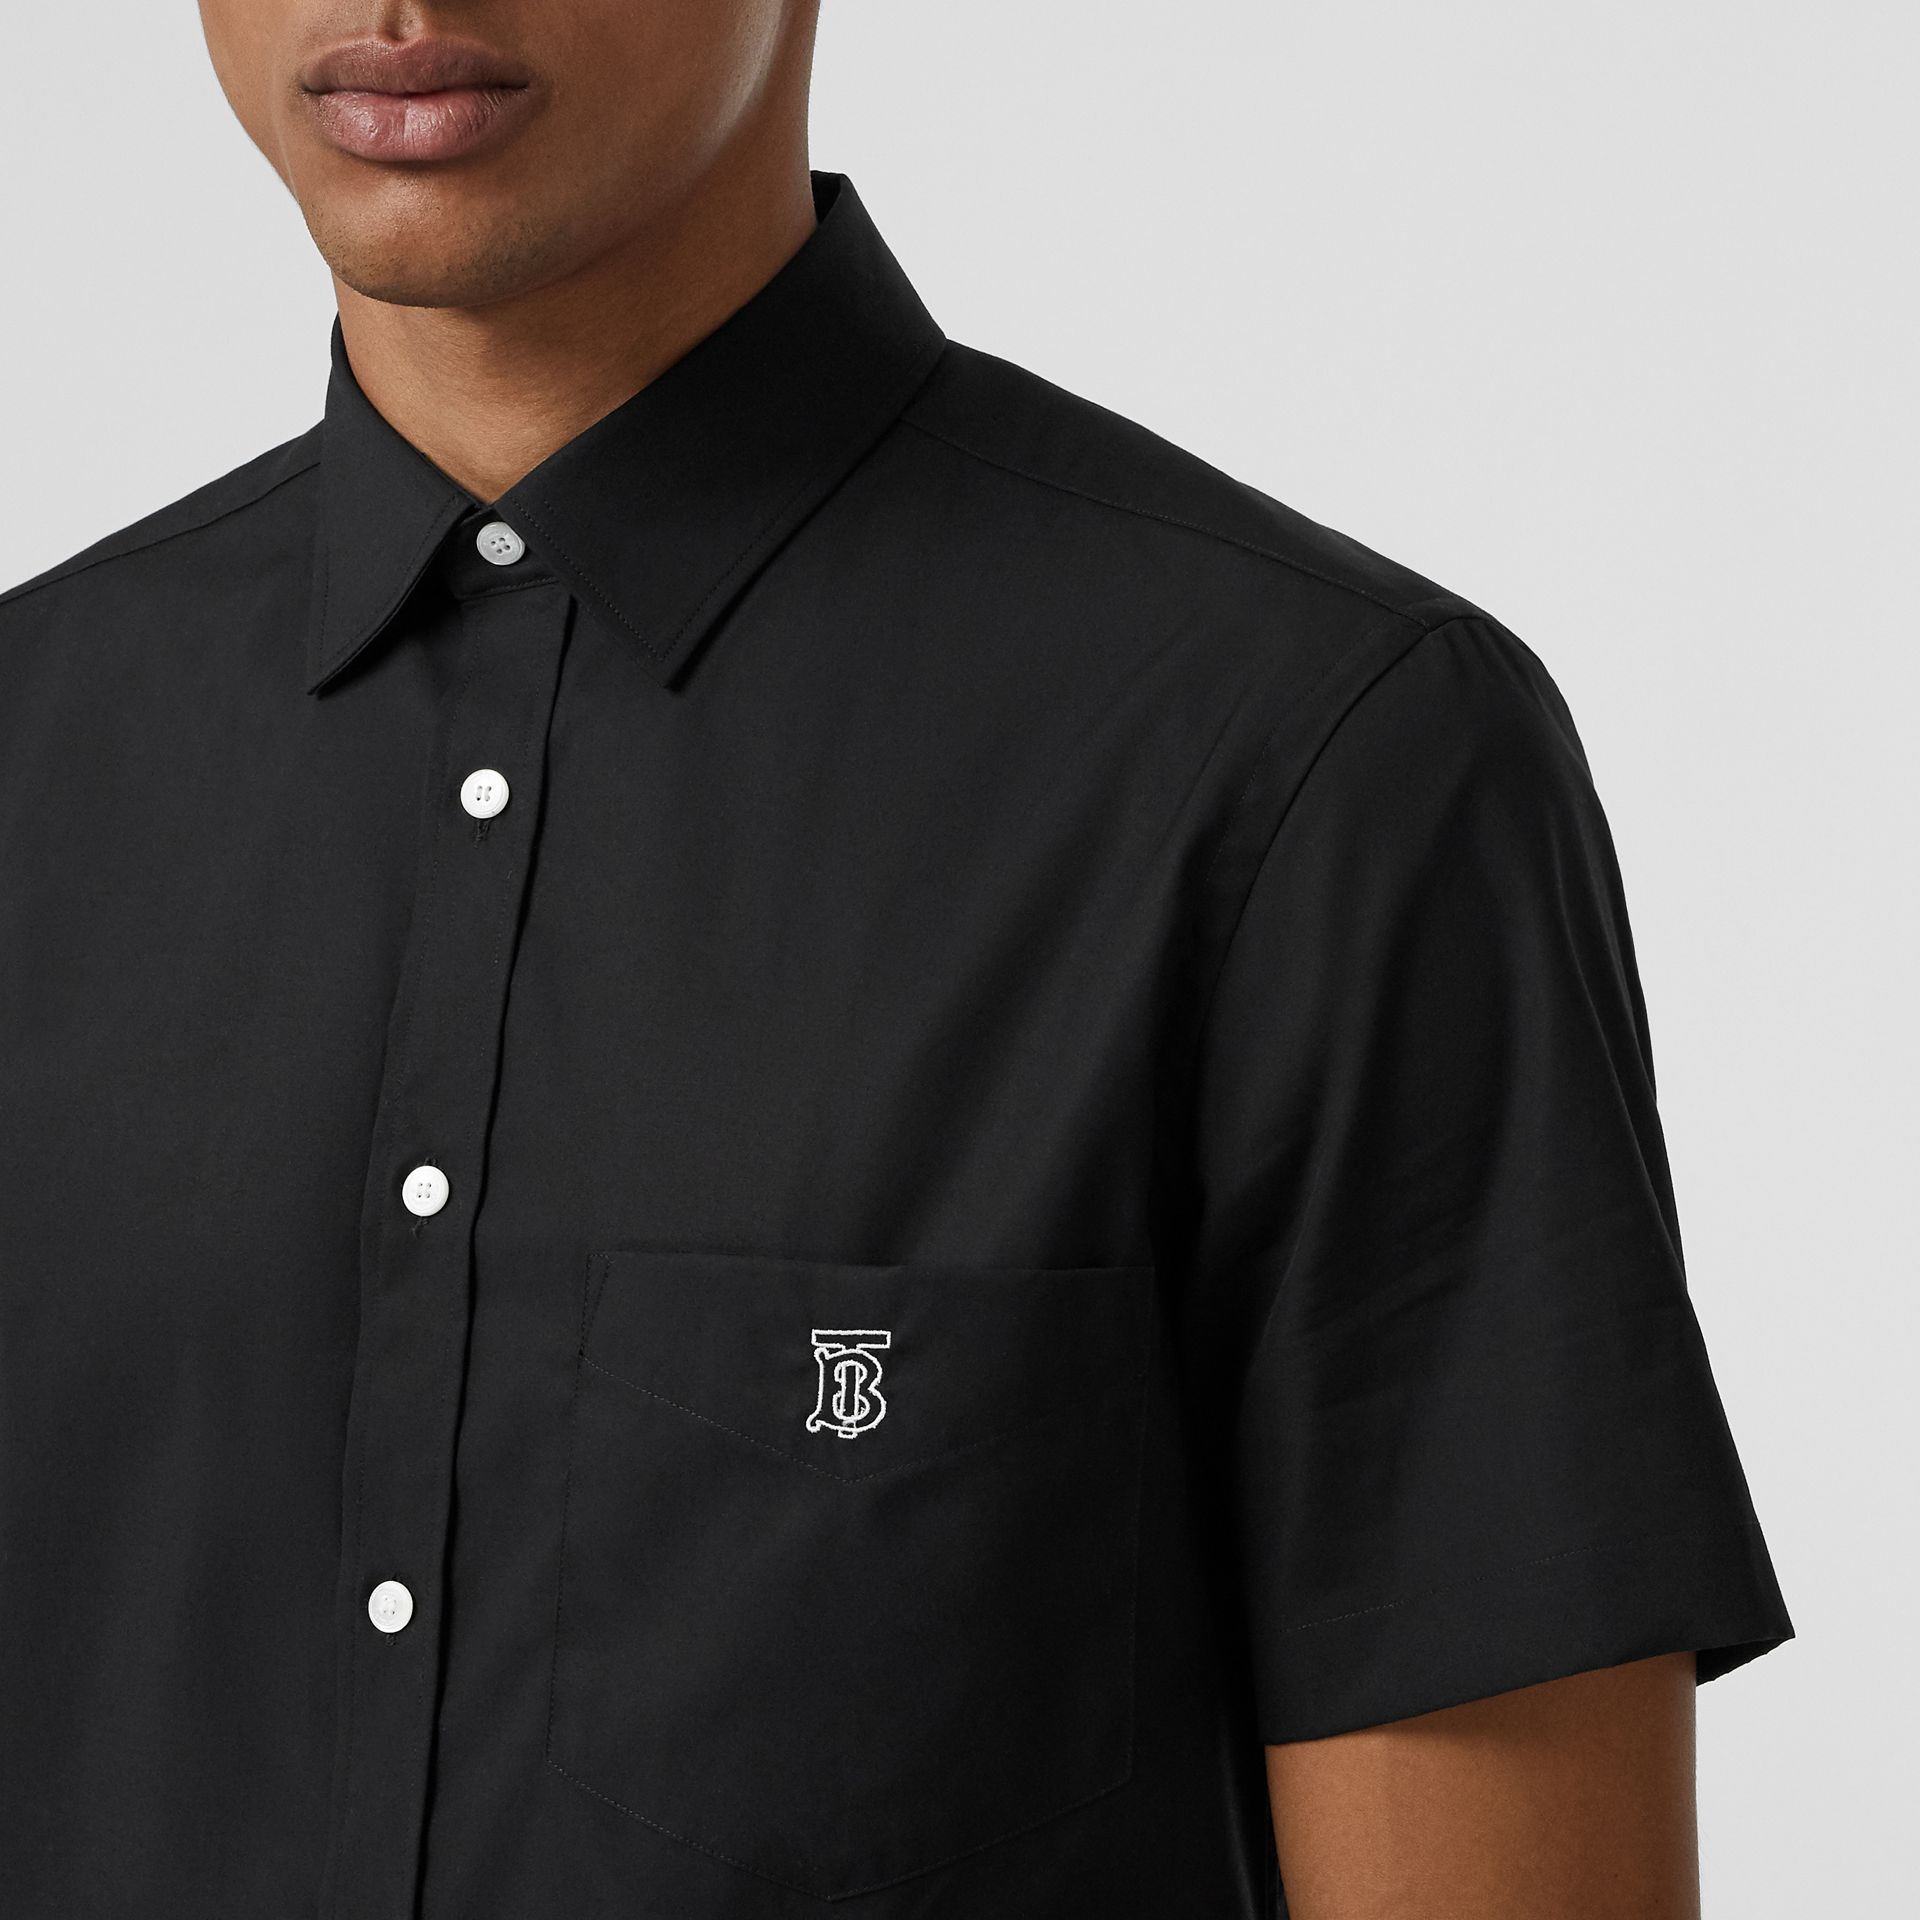 Short-sleeve Monogram Motif Stretch Cotton Shirt in Black - Men | Burberry Canada - gallery image 1